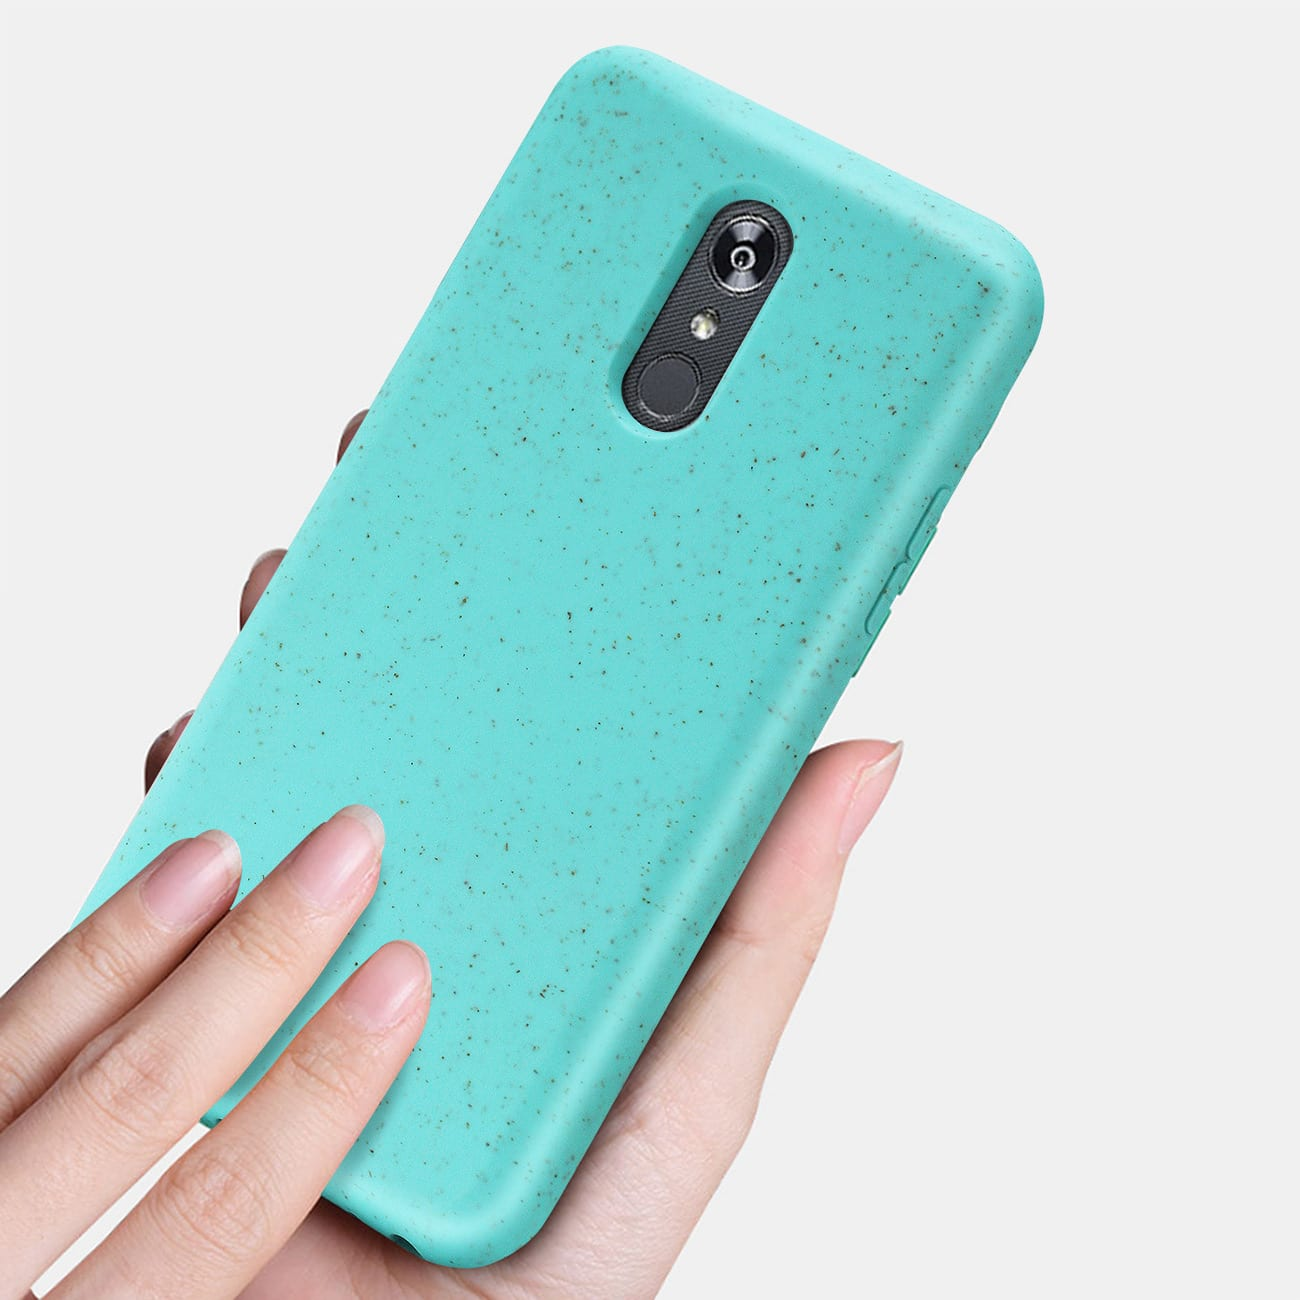 ISTIK LG STYLO 5 Wheat Bran Material Silicone Phone Case In Blue